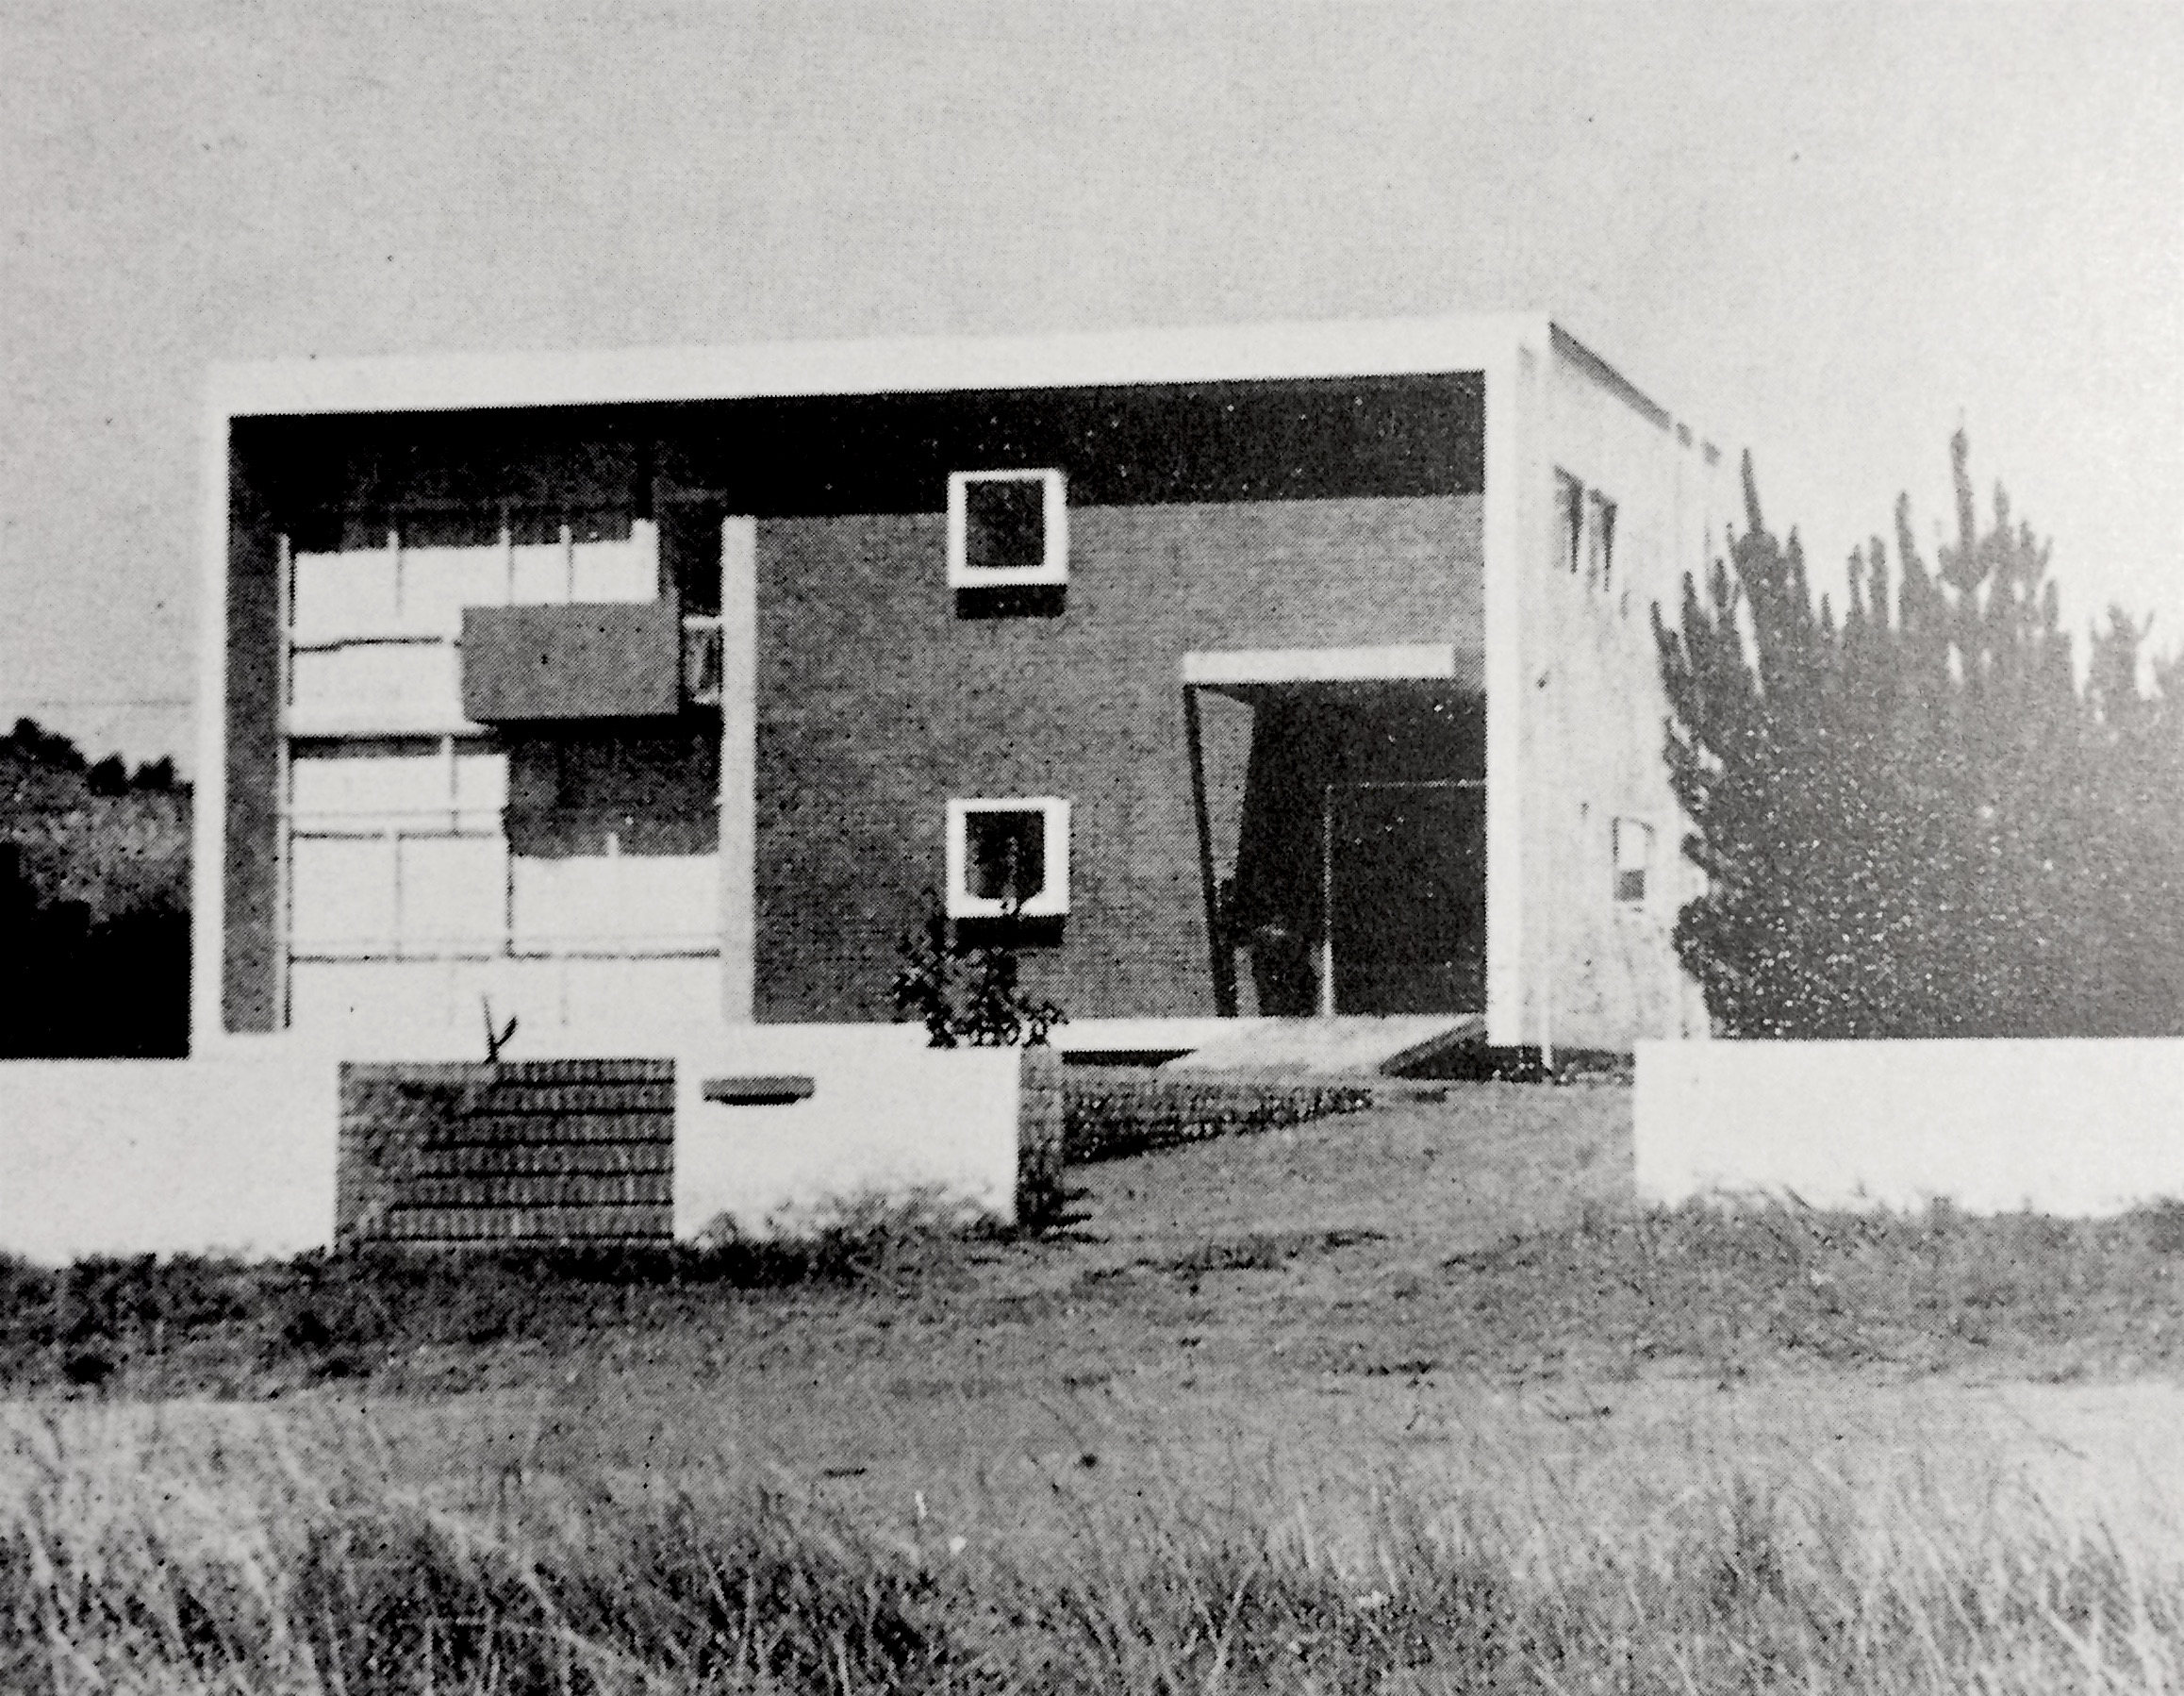 Martiensson House Design Influenced Many Hillbrow Blocks Of Flats From The  1950s